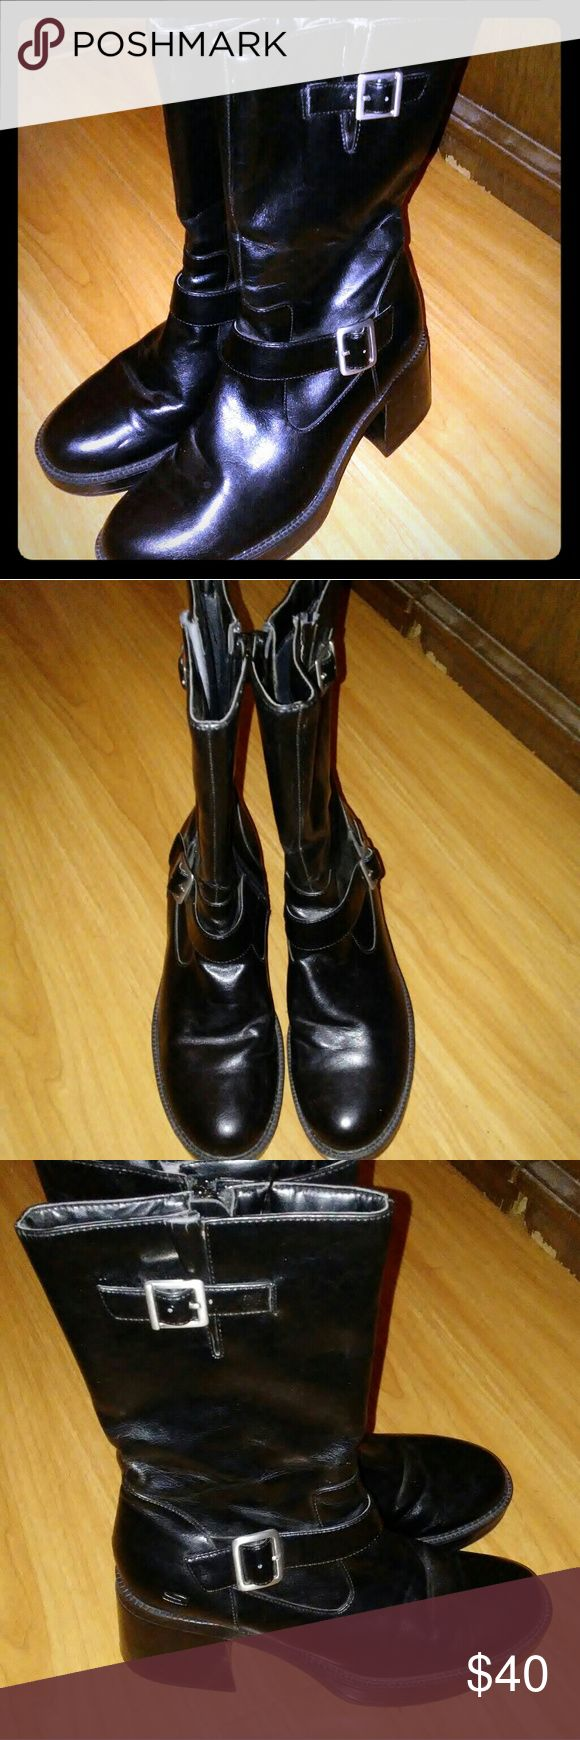 Women's Black Sketcher Boots Size 9 Pre-owned, Below the knee, normal wear on bottom Skechers Shoes Lace Up Boots